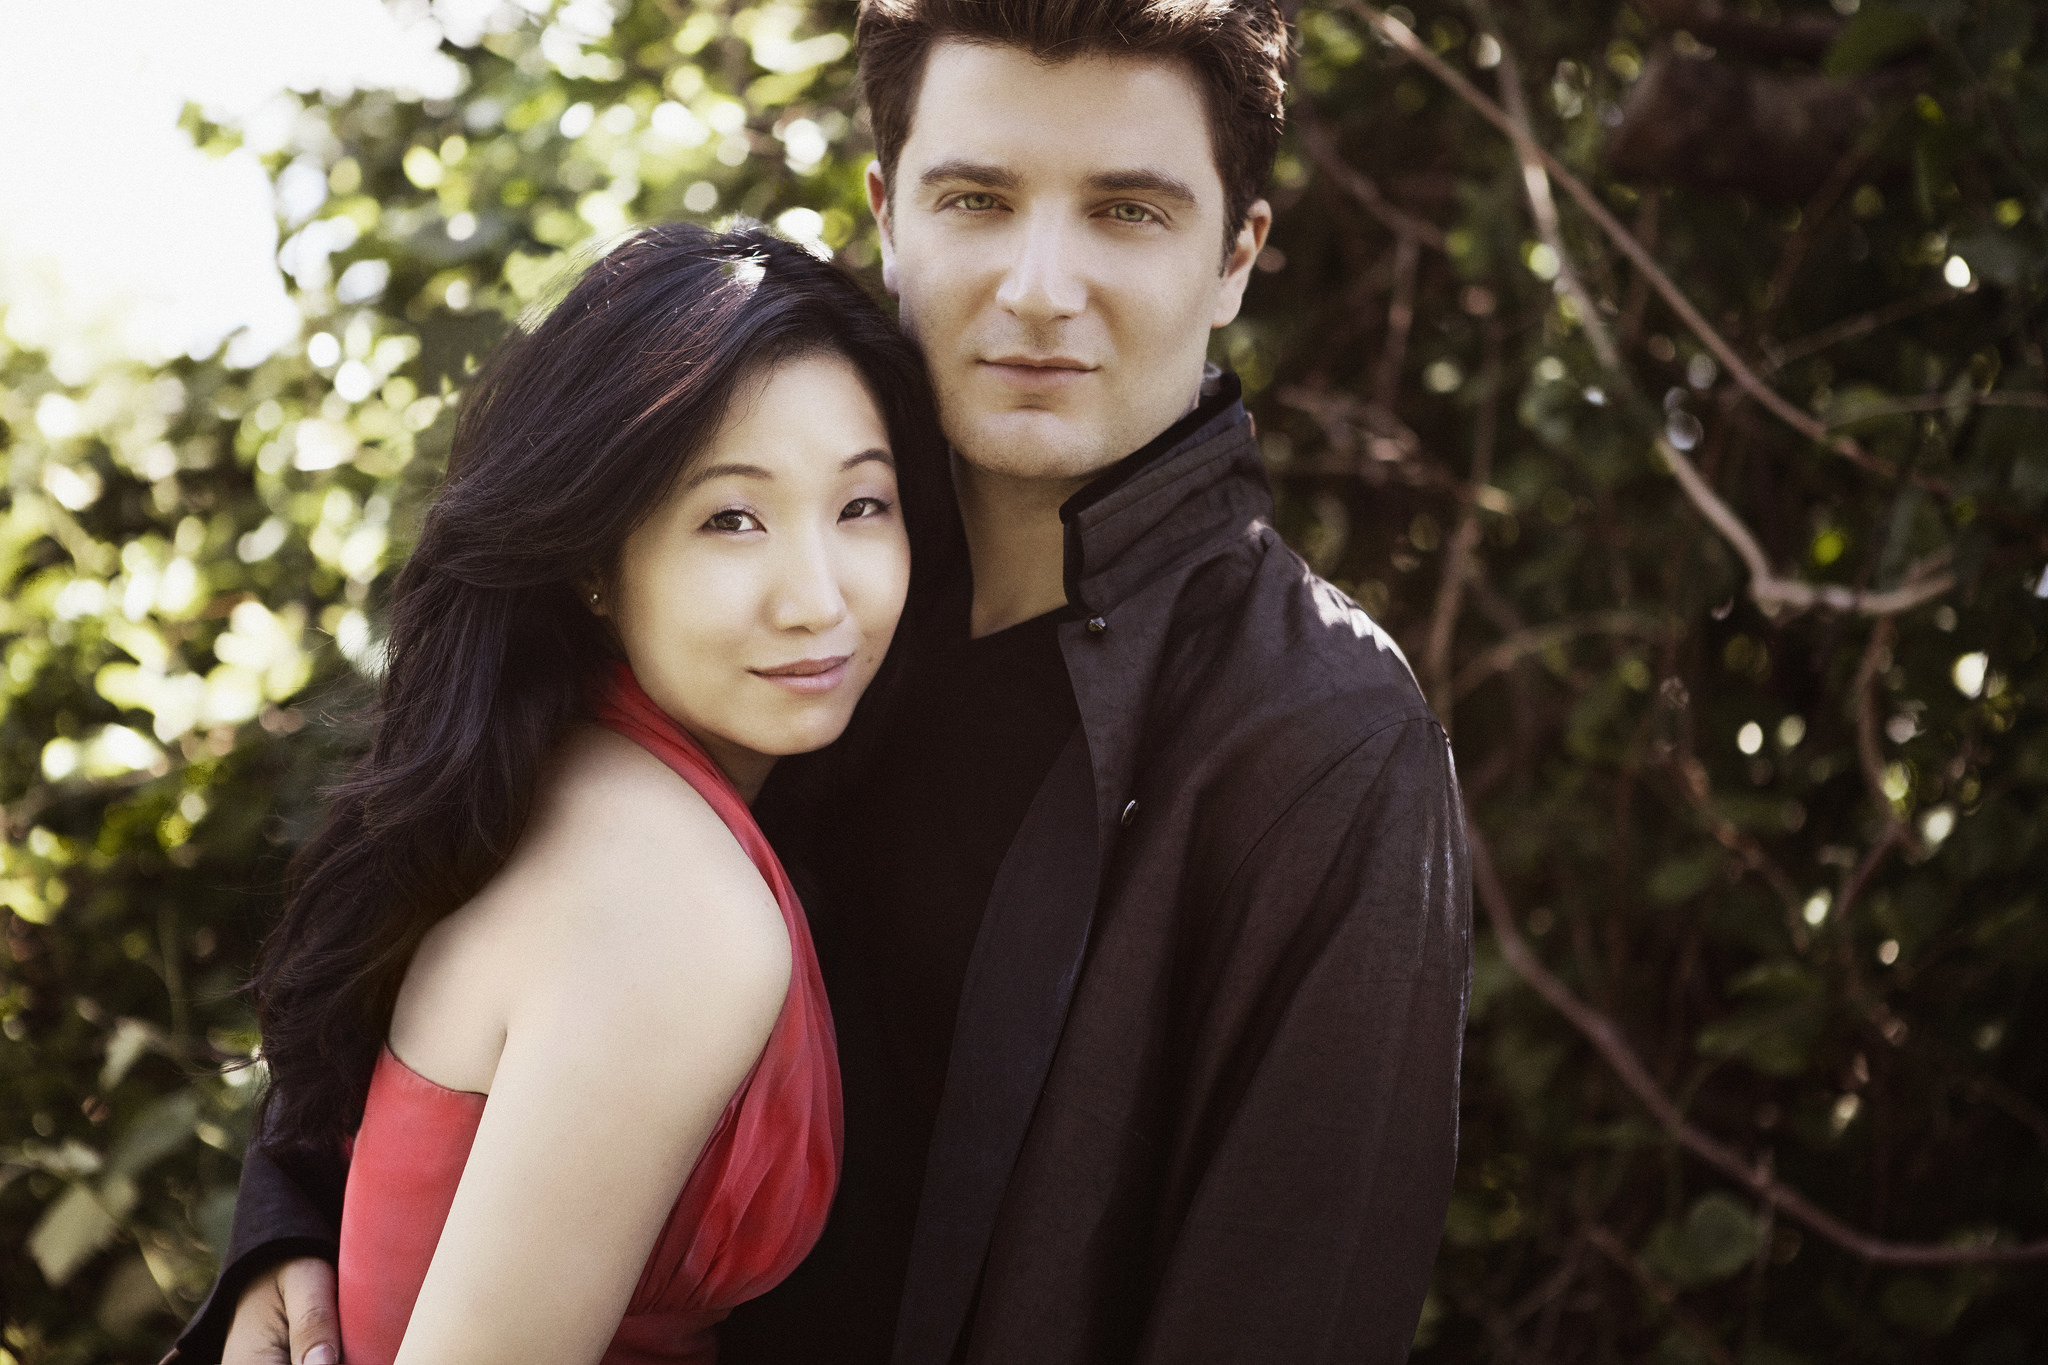 Caption: Lucille Chung and Alessio Bax, Credit: courtesy of the artists